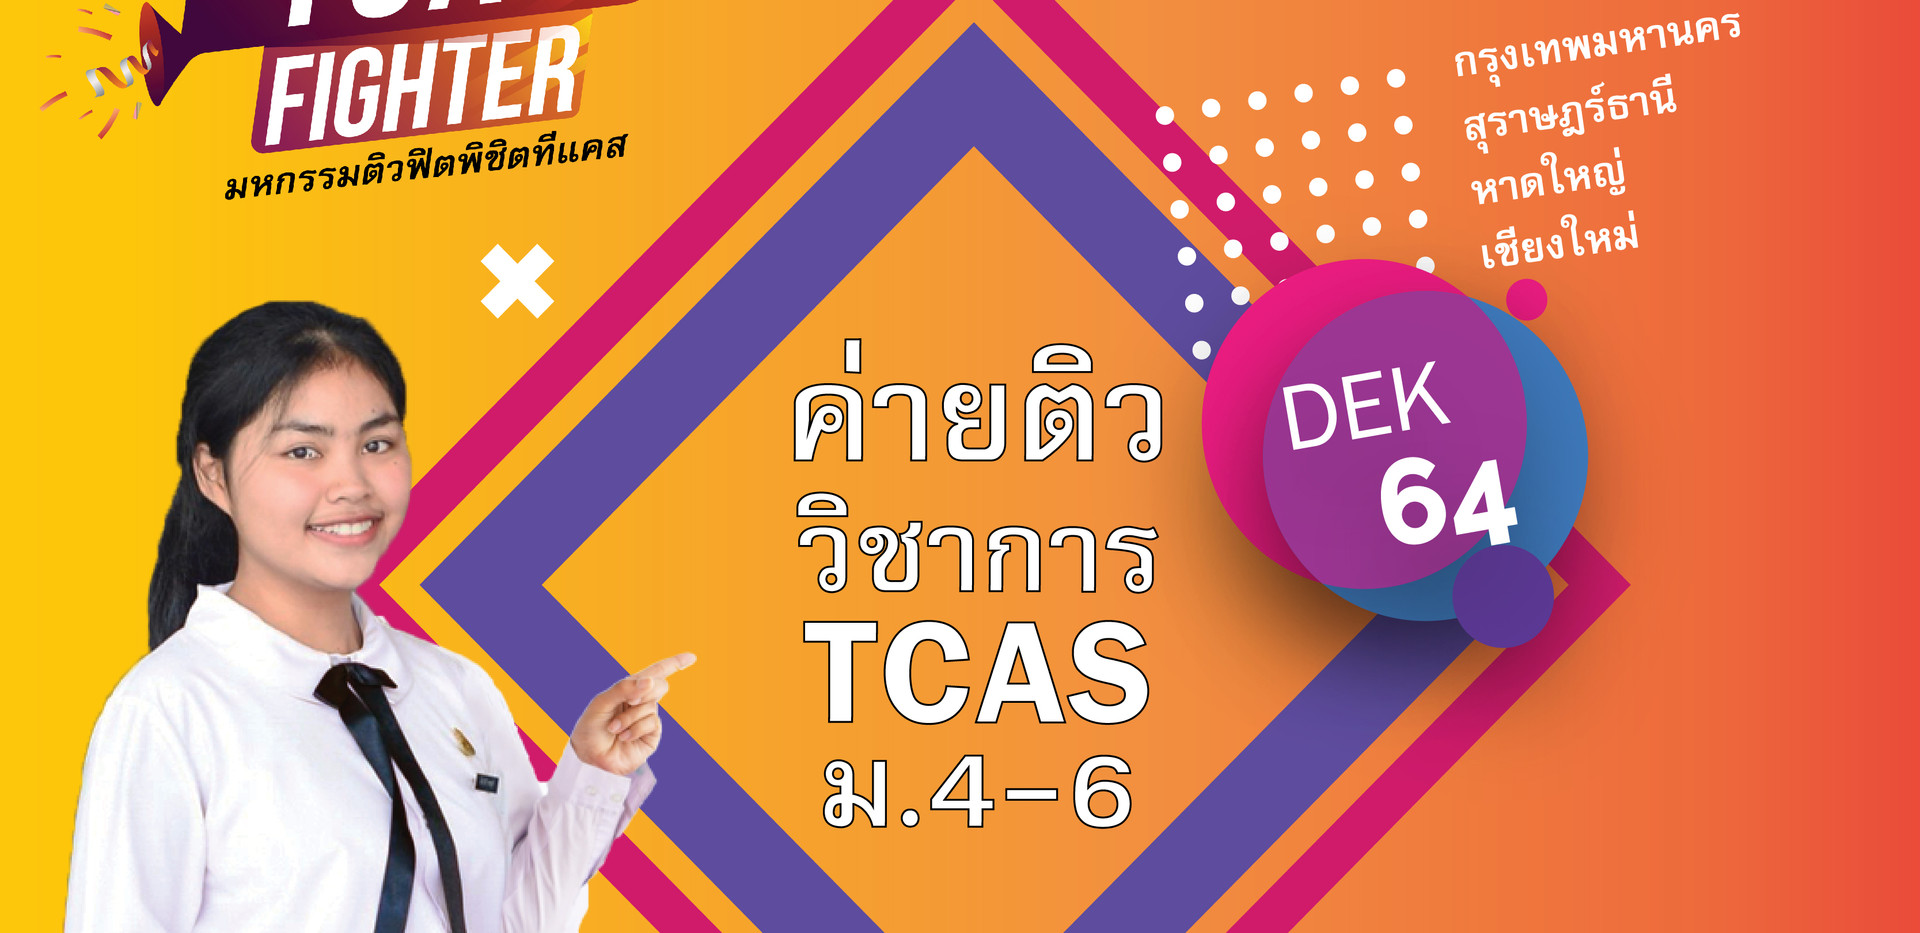 Tcas Fighter 64 FB Ad-01.jpg